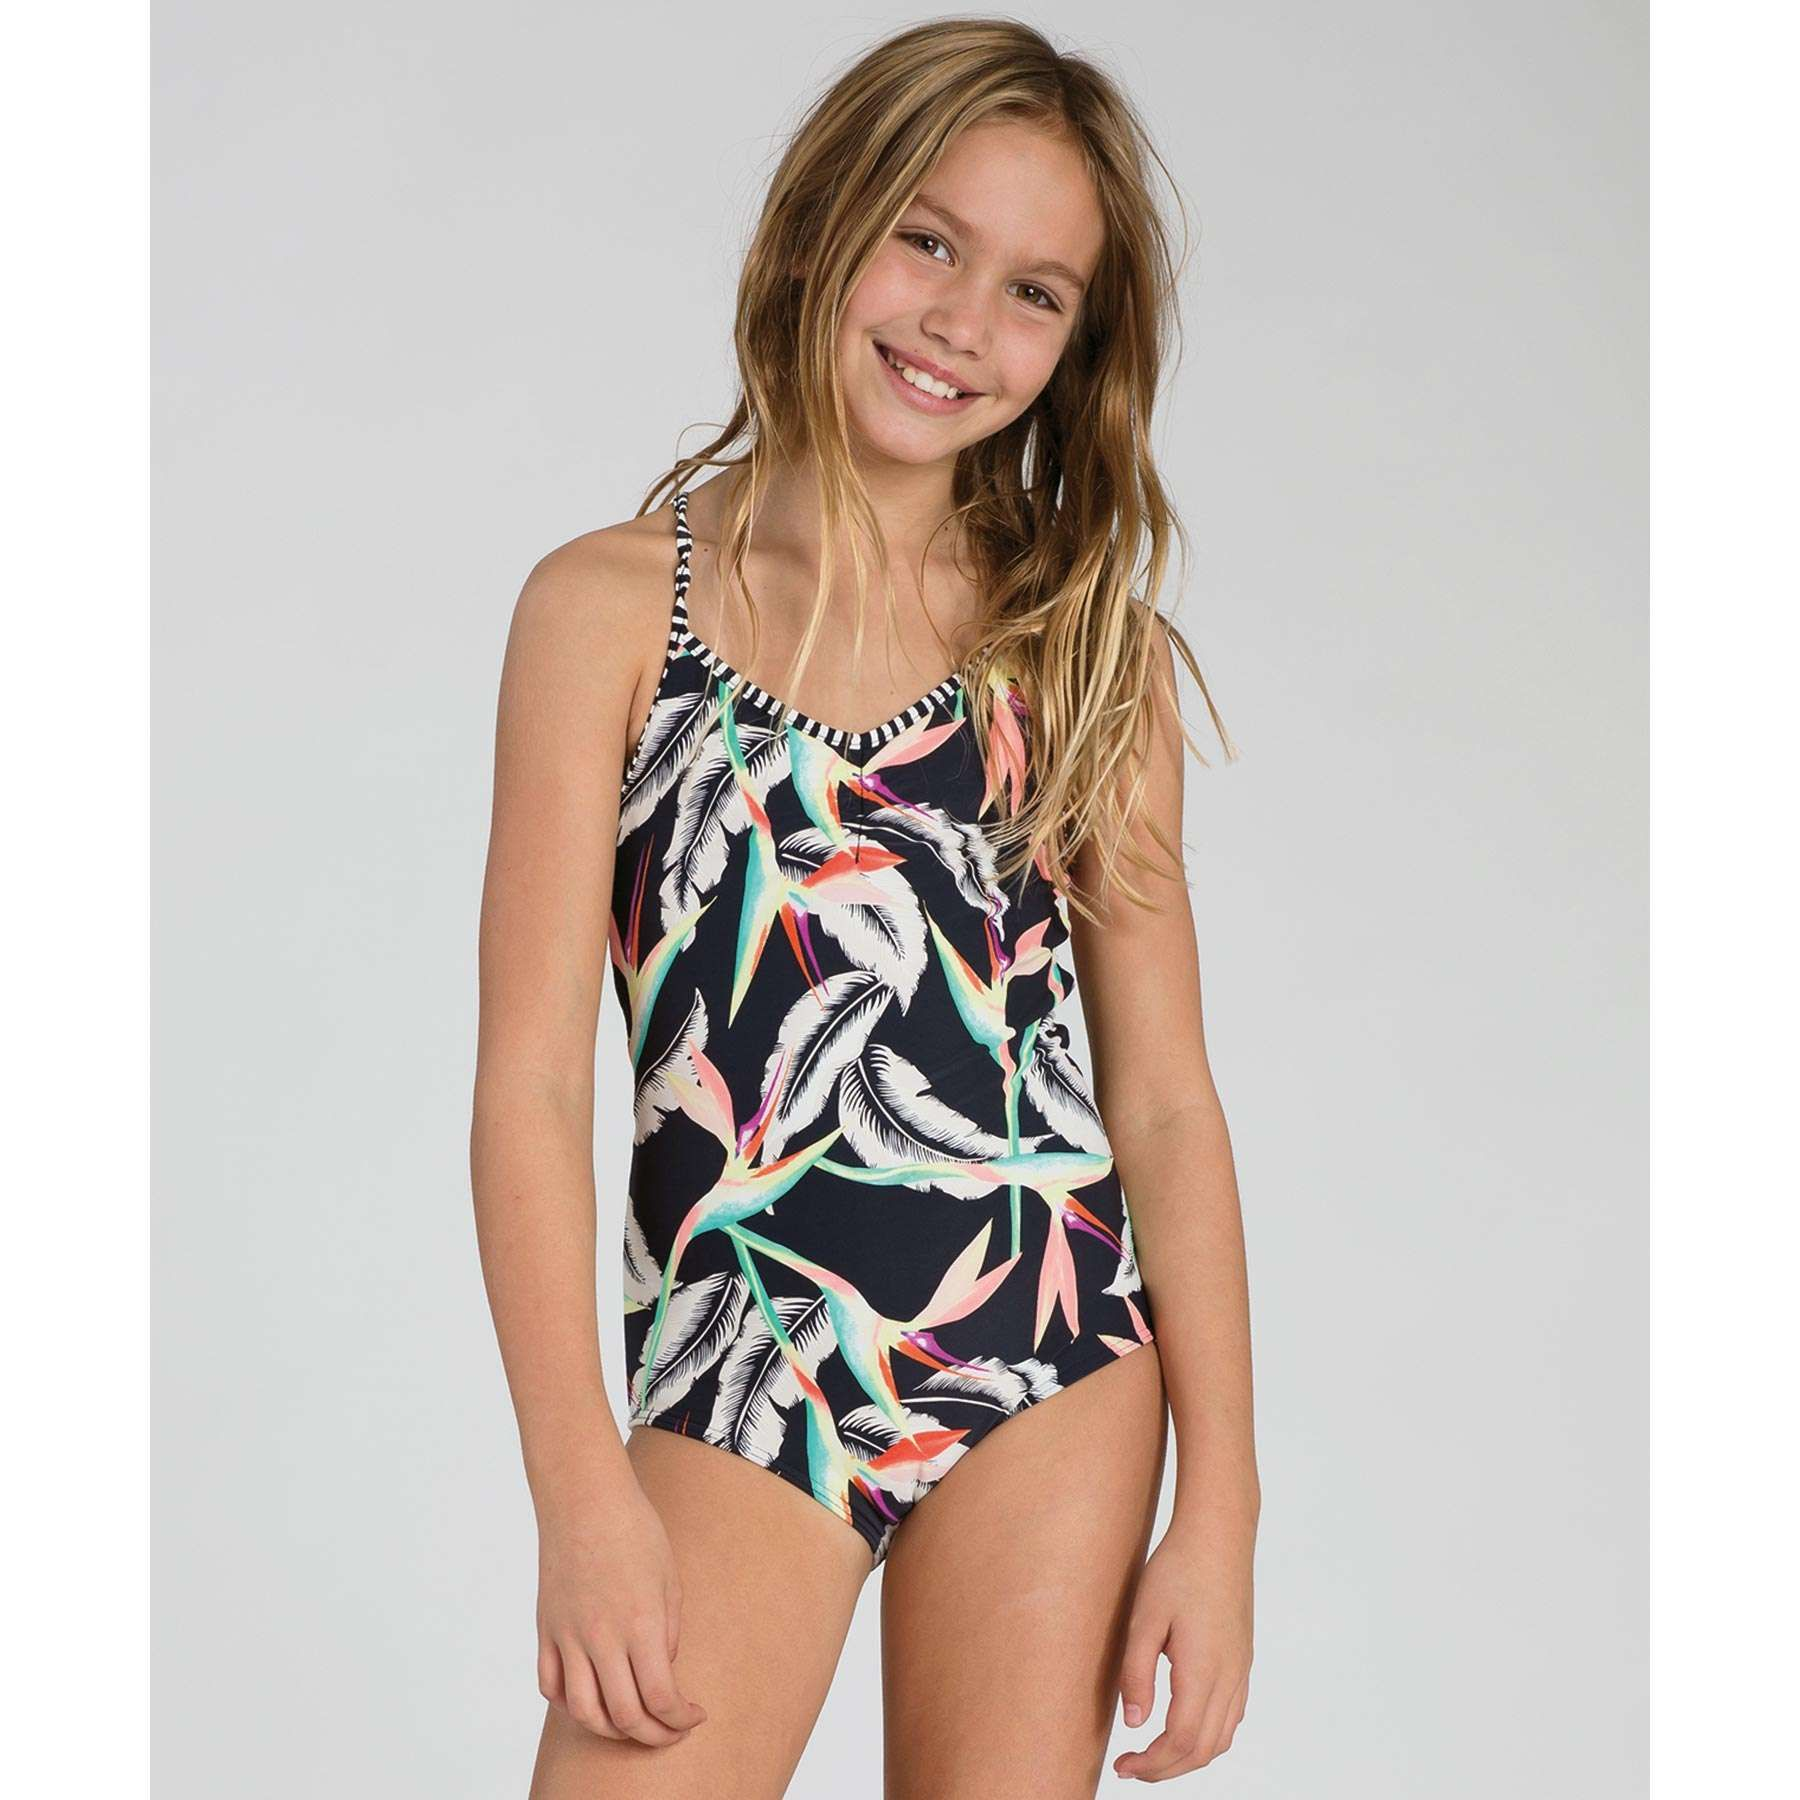 a5621a93879f6 Billabong Girls Swimwear Ticket To Paradise One Piece